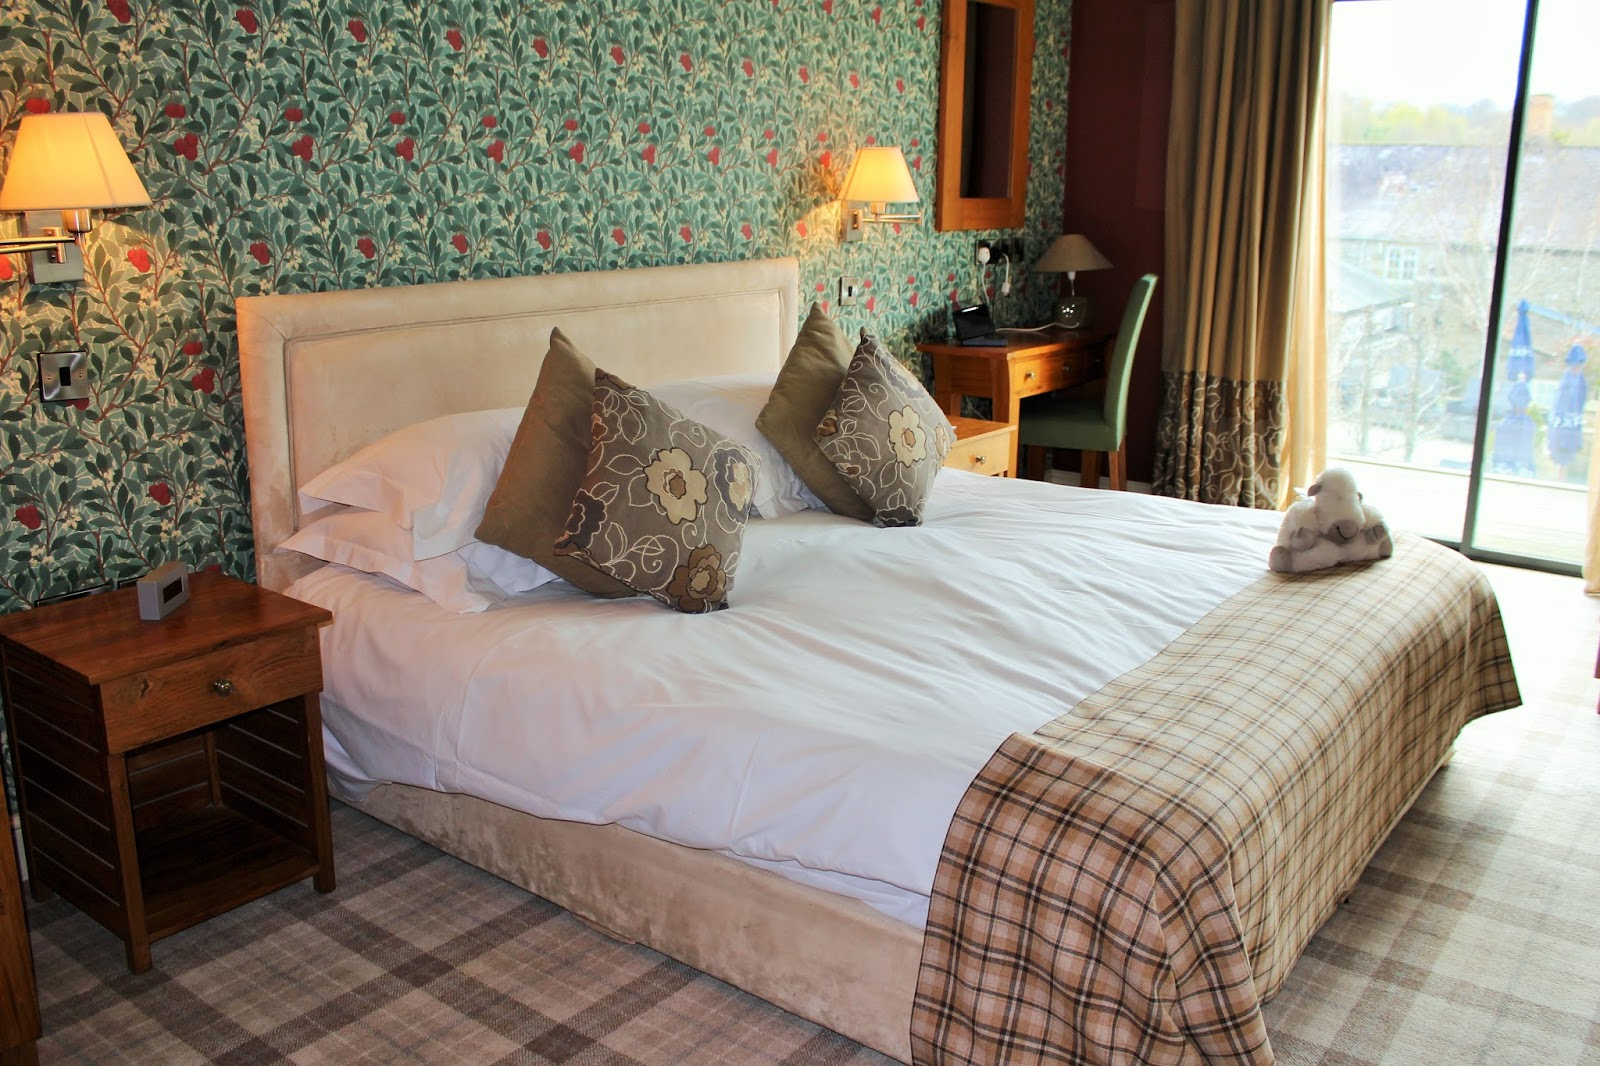 A Trip to North Yorkshire 5 - The Feversham Arms Hotel